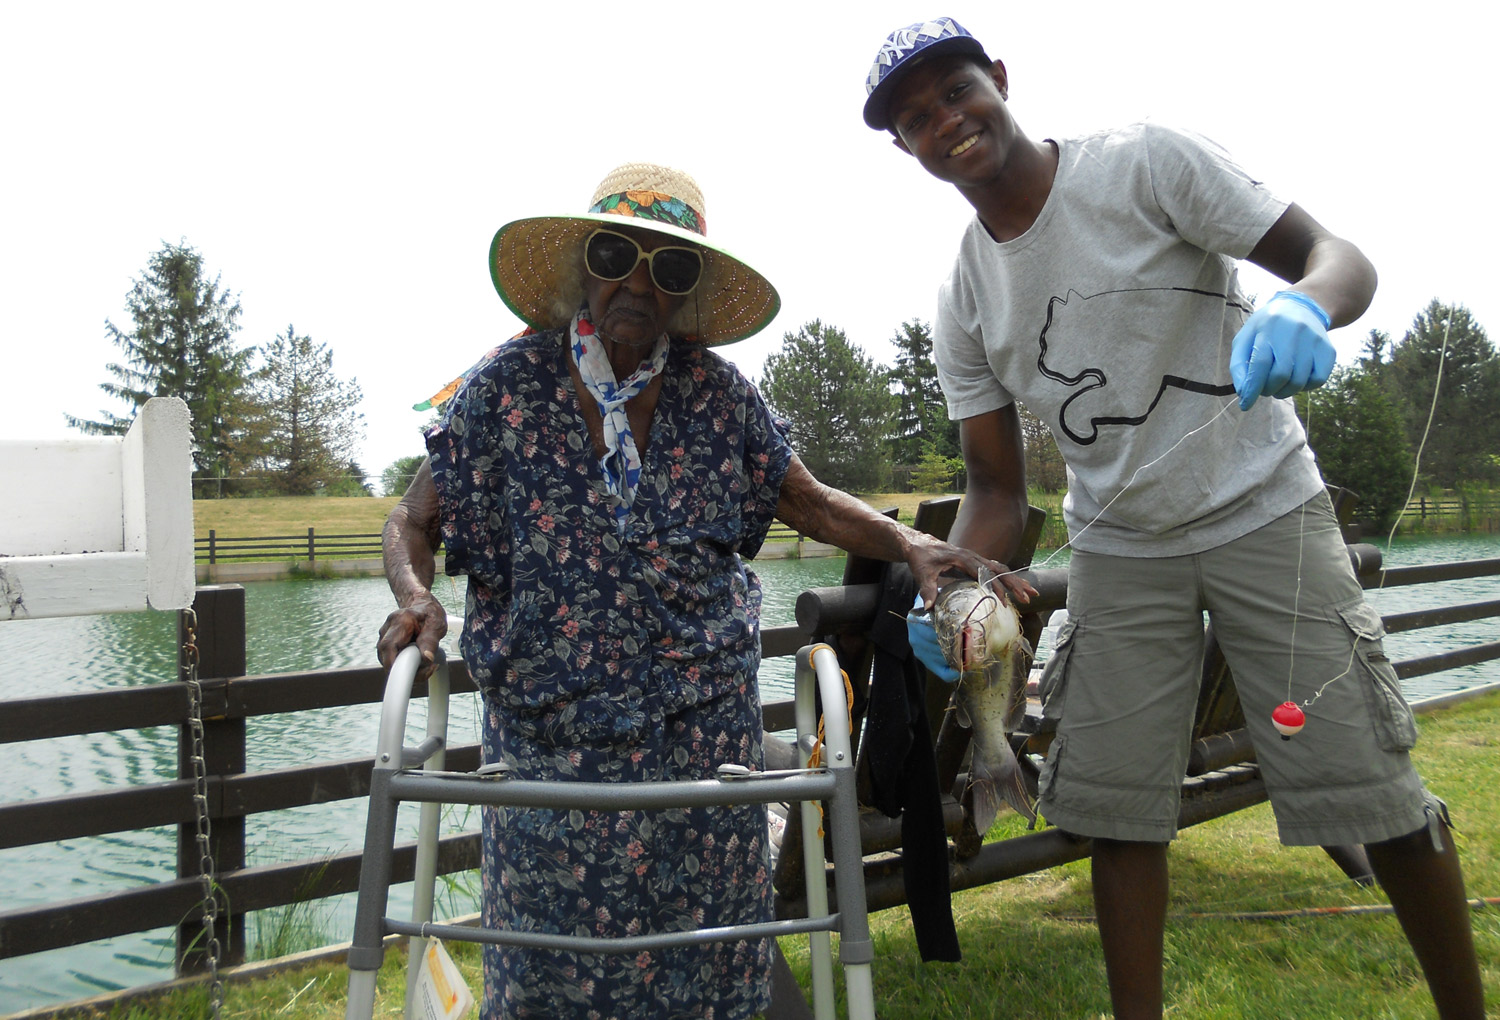 Jeralean Talley and godson Tyler Kinloch pictured with one of the seven catfish she caught at the Spring Valley Trout Farm in Dexter, Mich., on June 16, 2012.